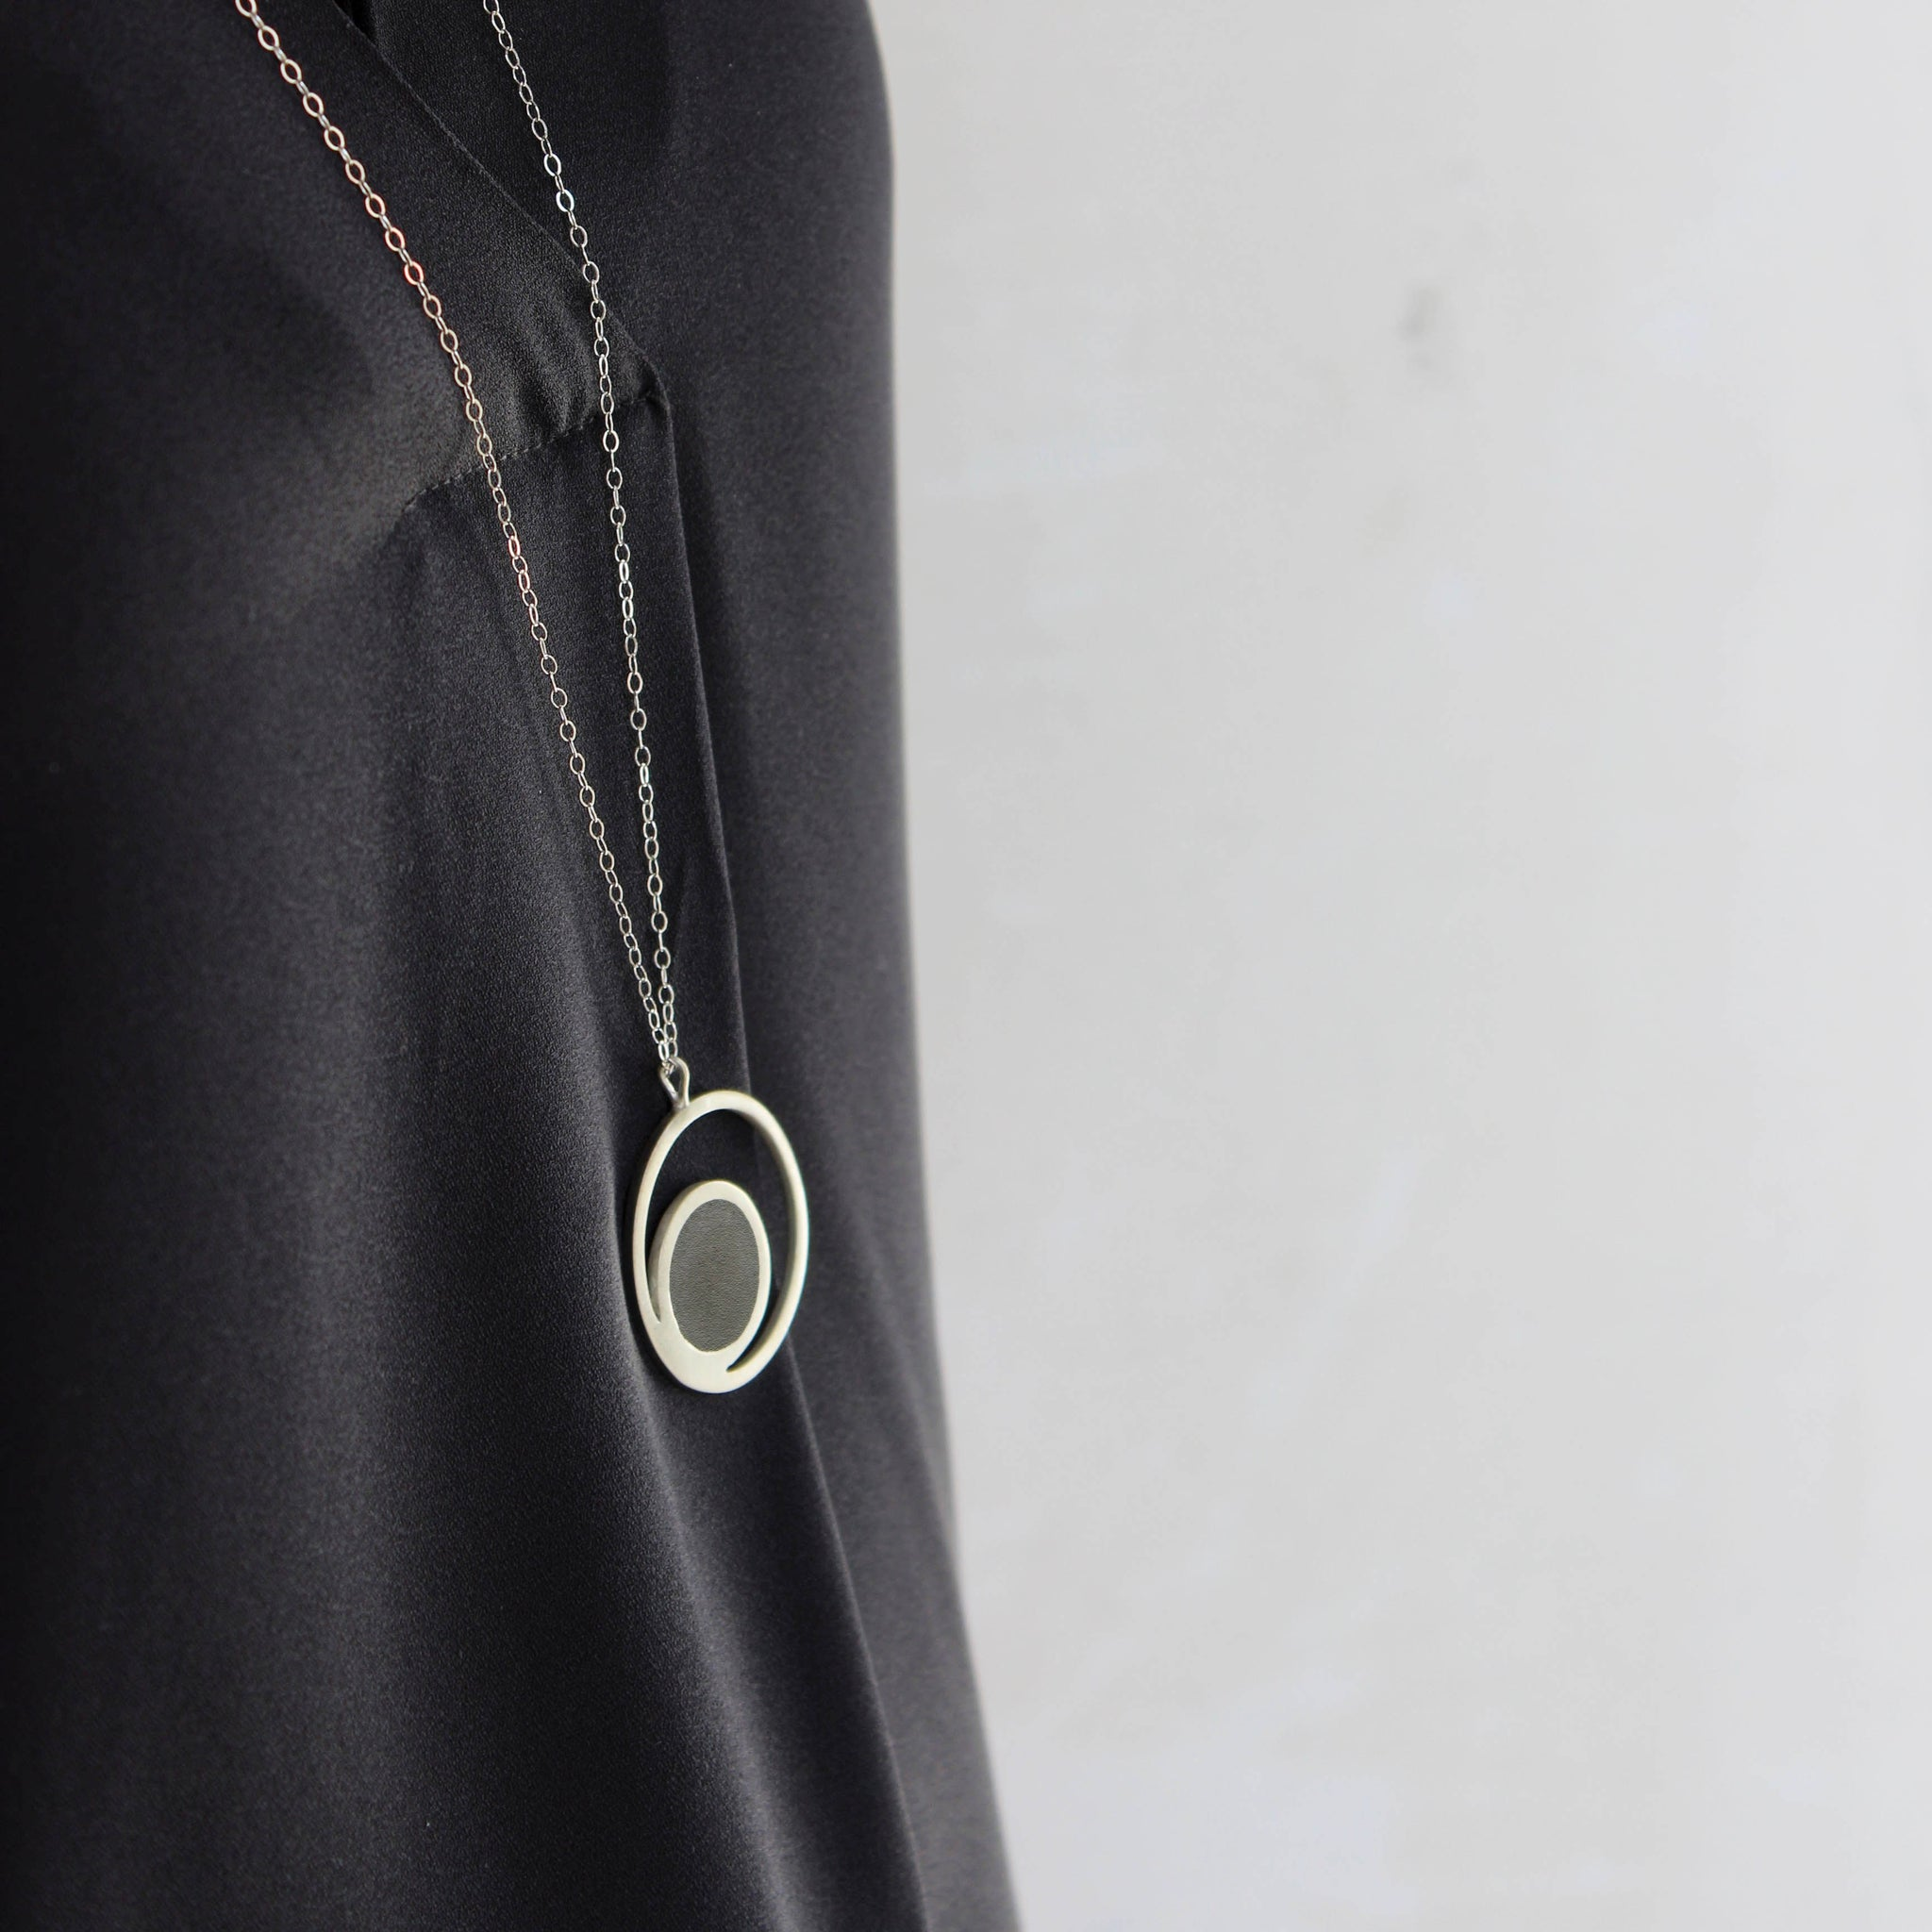 Orbit Concrete Necklace